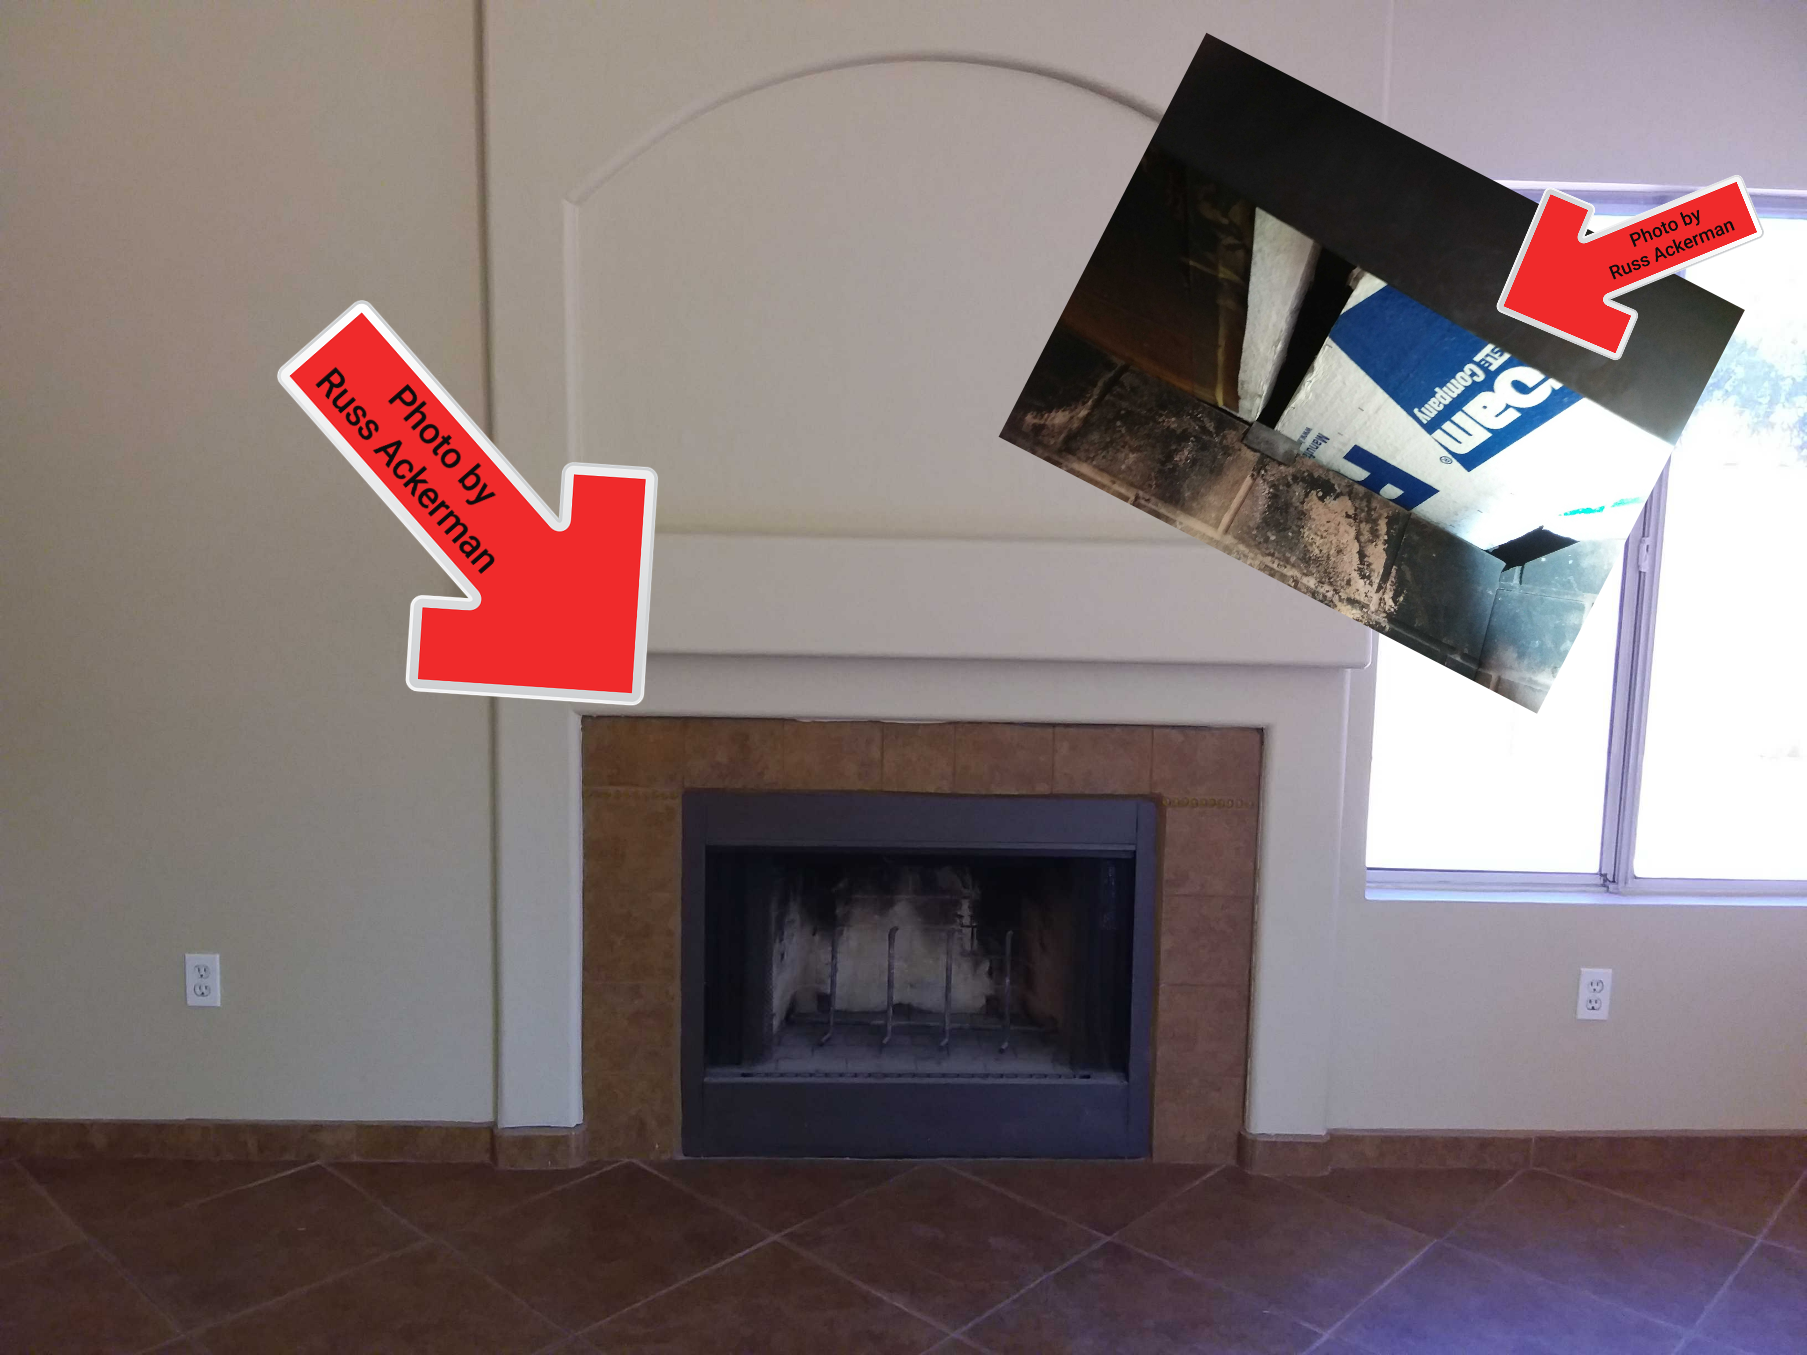 This fireplace looks safe to operate, until we find the flue stuffed with styrofoam insulation. Always check before starting a fire.